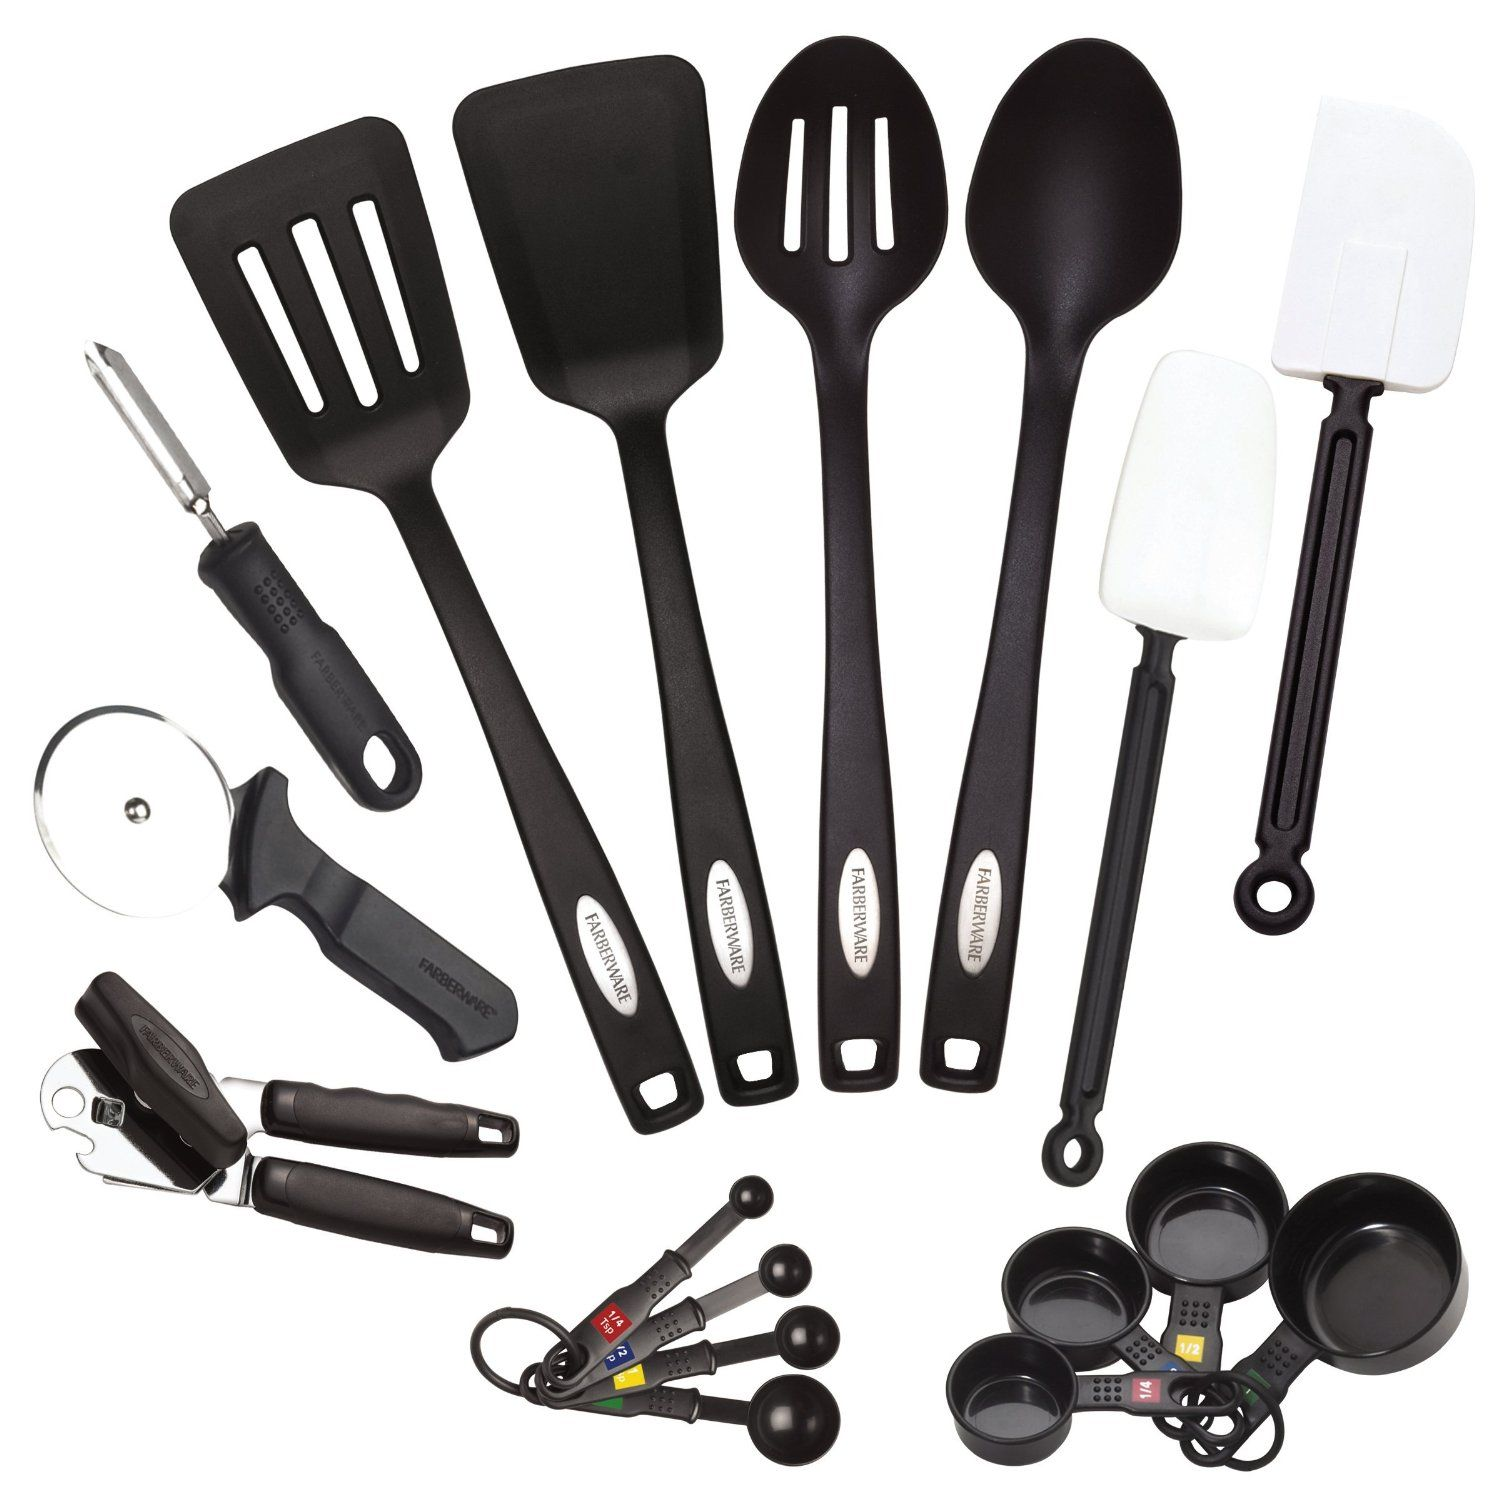 Amazon.com: Farberware Classic 17 Piece Tool And Gadget Set: Kitchen Tool